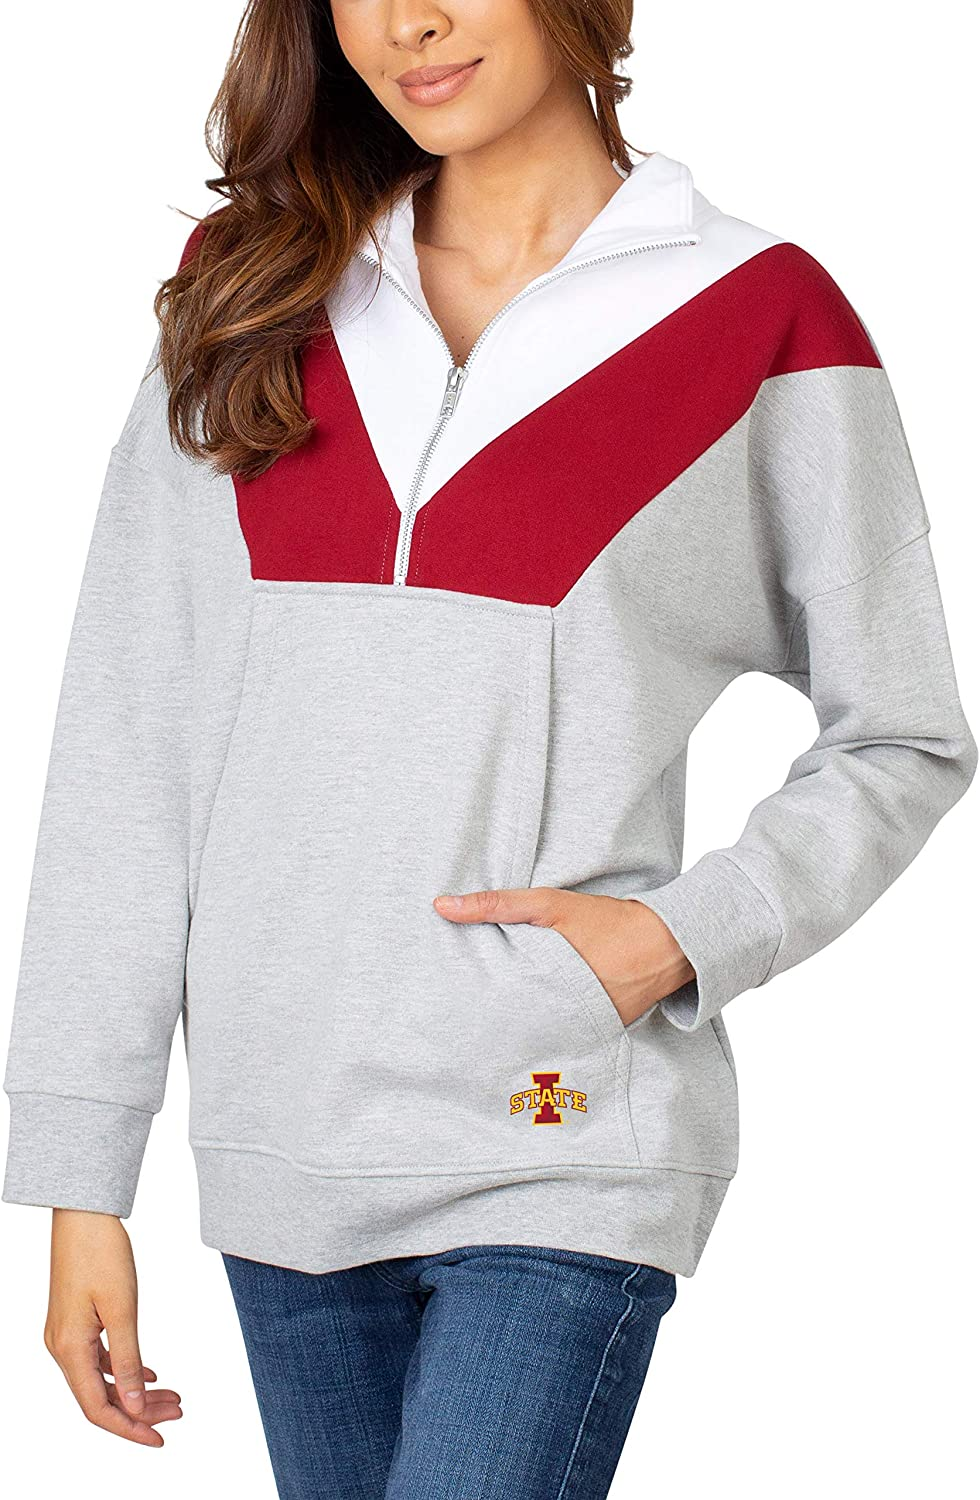 Cheap mail Special price order shopping UG Apparel Women's Colorblock 1 Zip 4